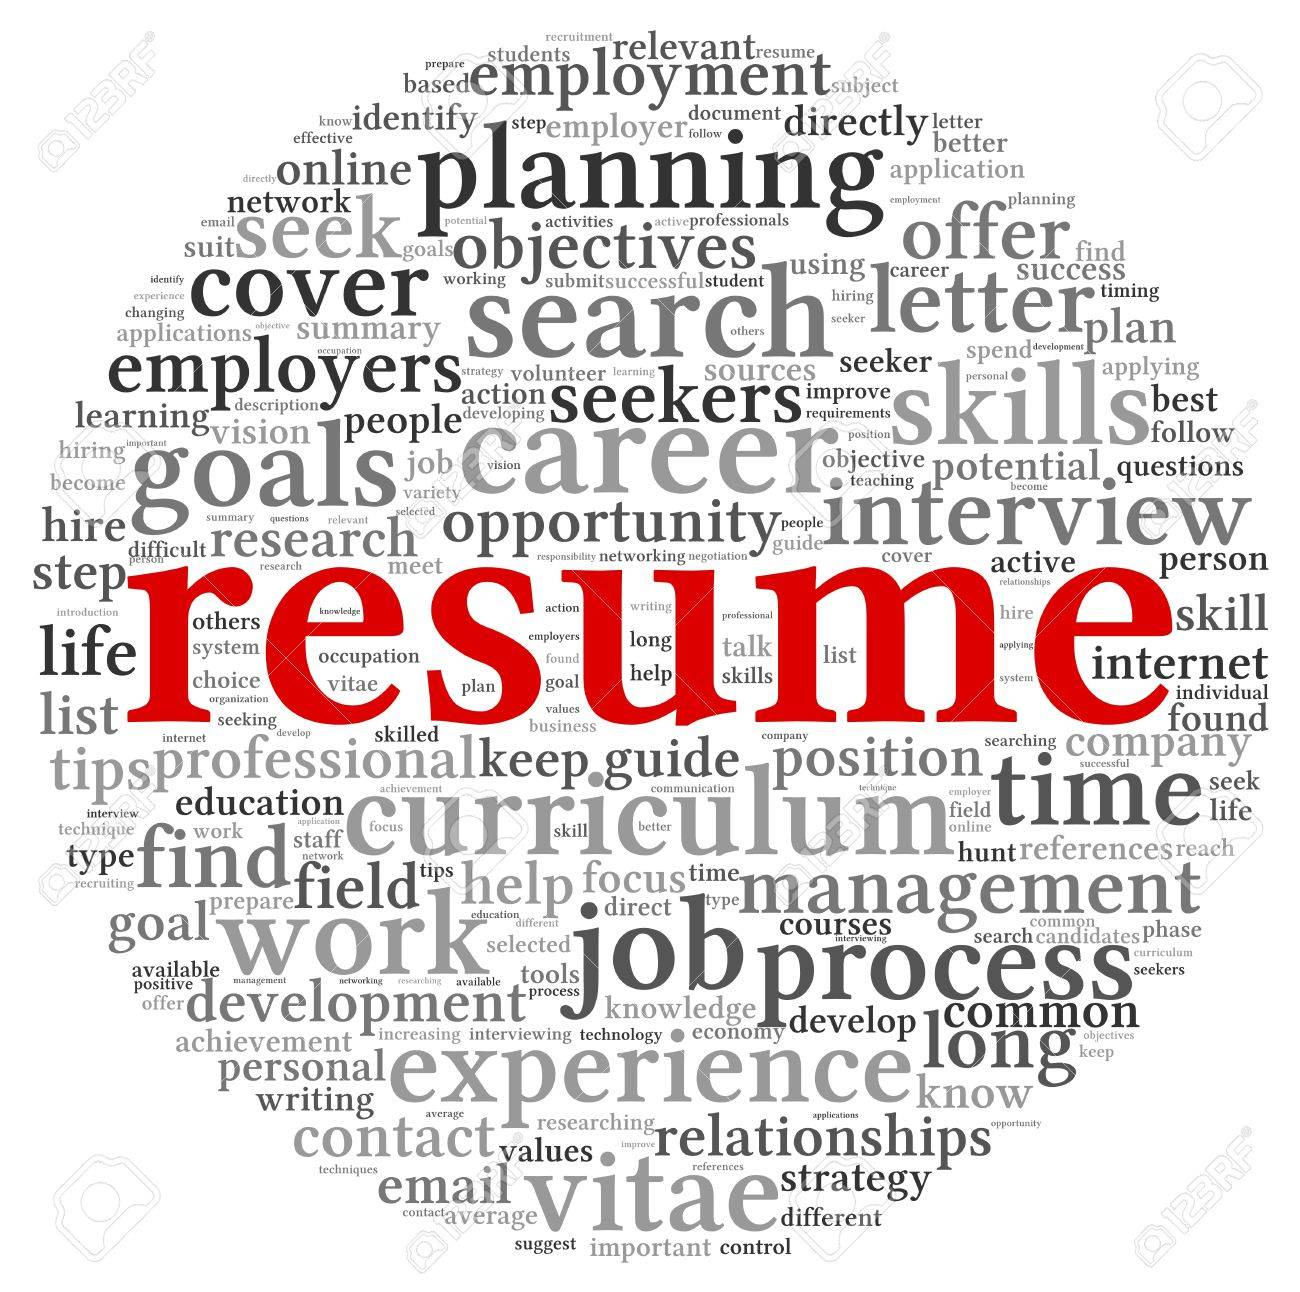 resume concept in word tag cloud on white background stock photo resume concept in word tag cloud on white background stock photo 15357592